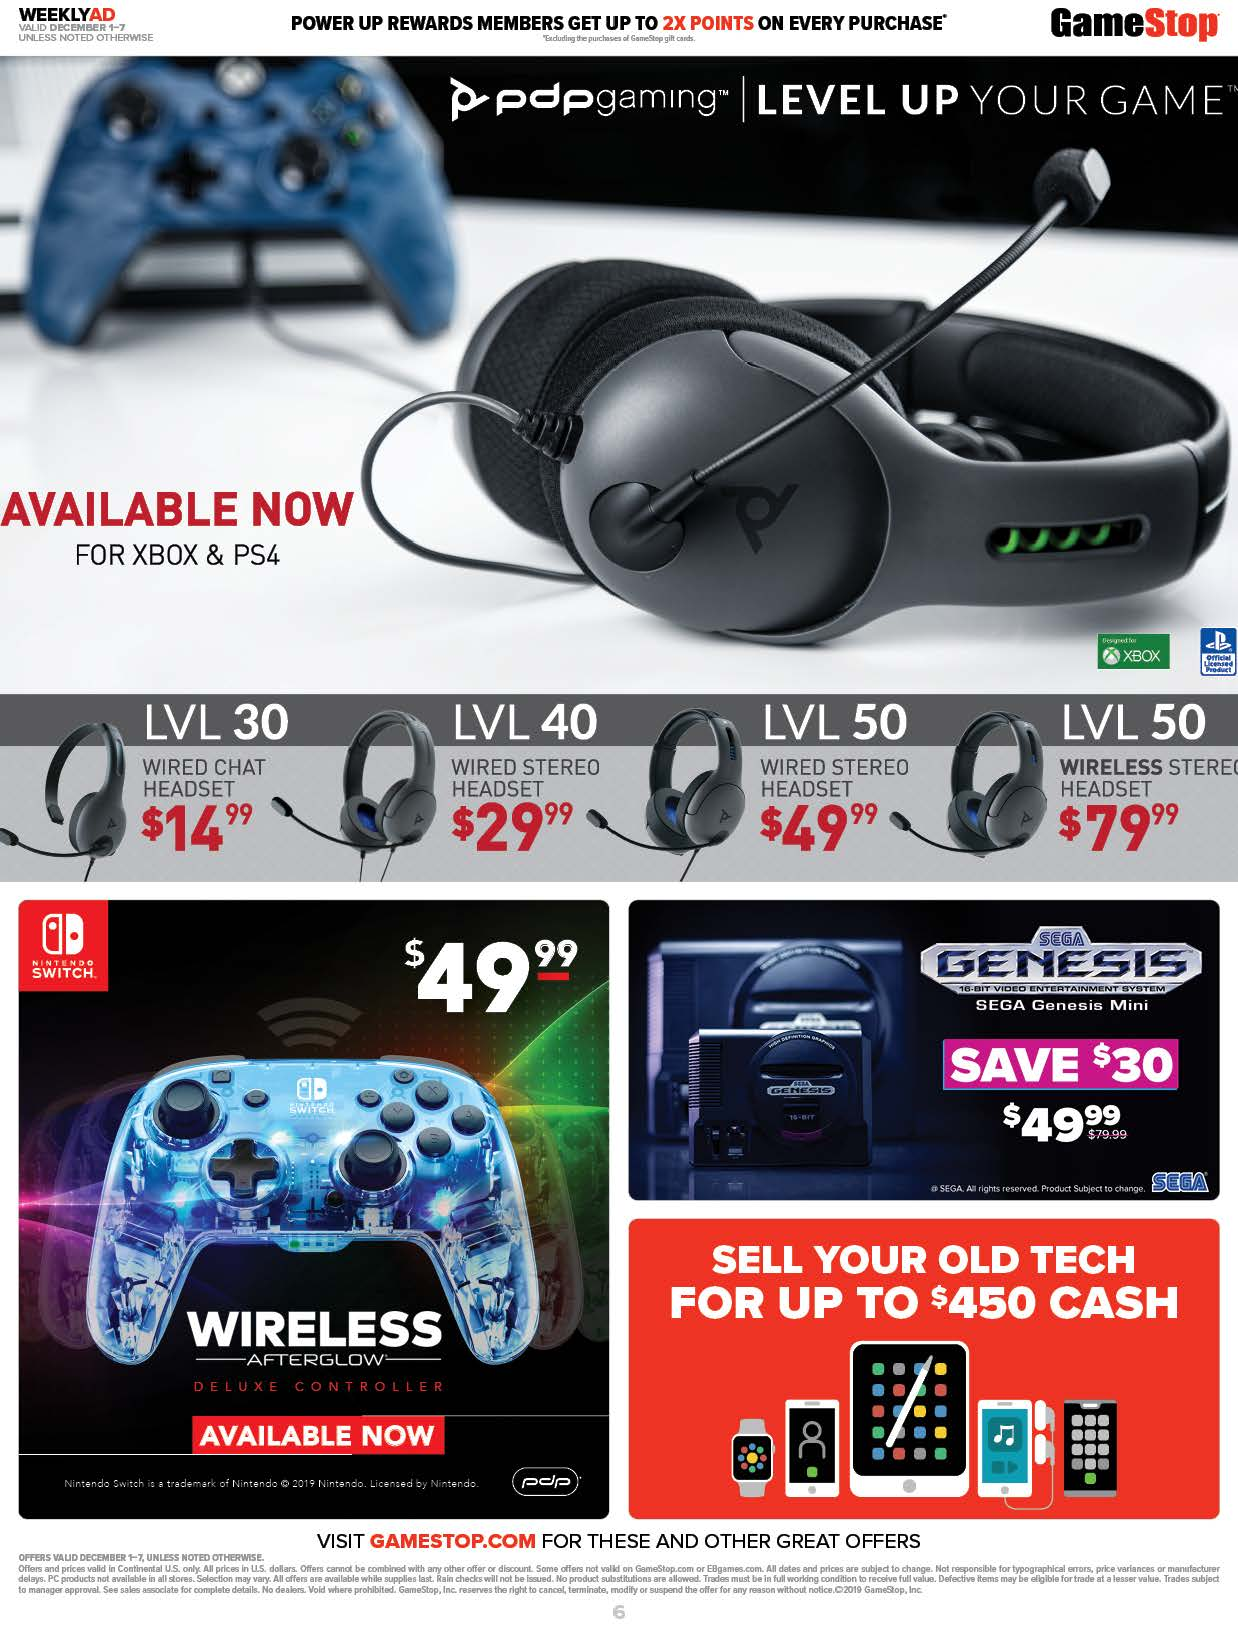 GameStop Cyber Monday 2019 Page 6